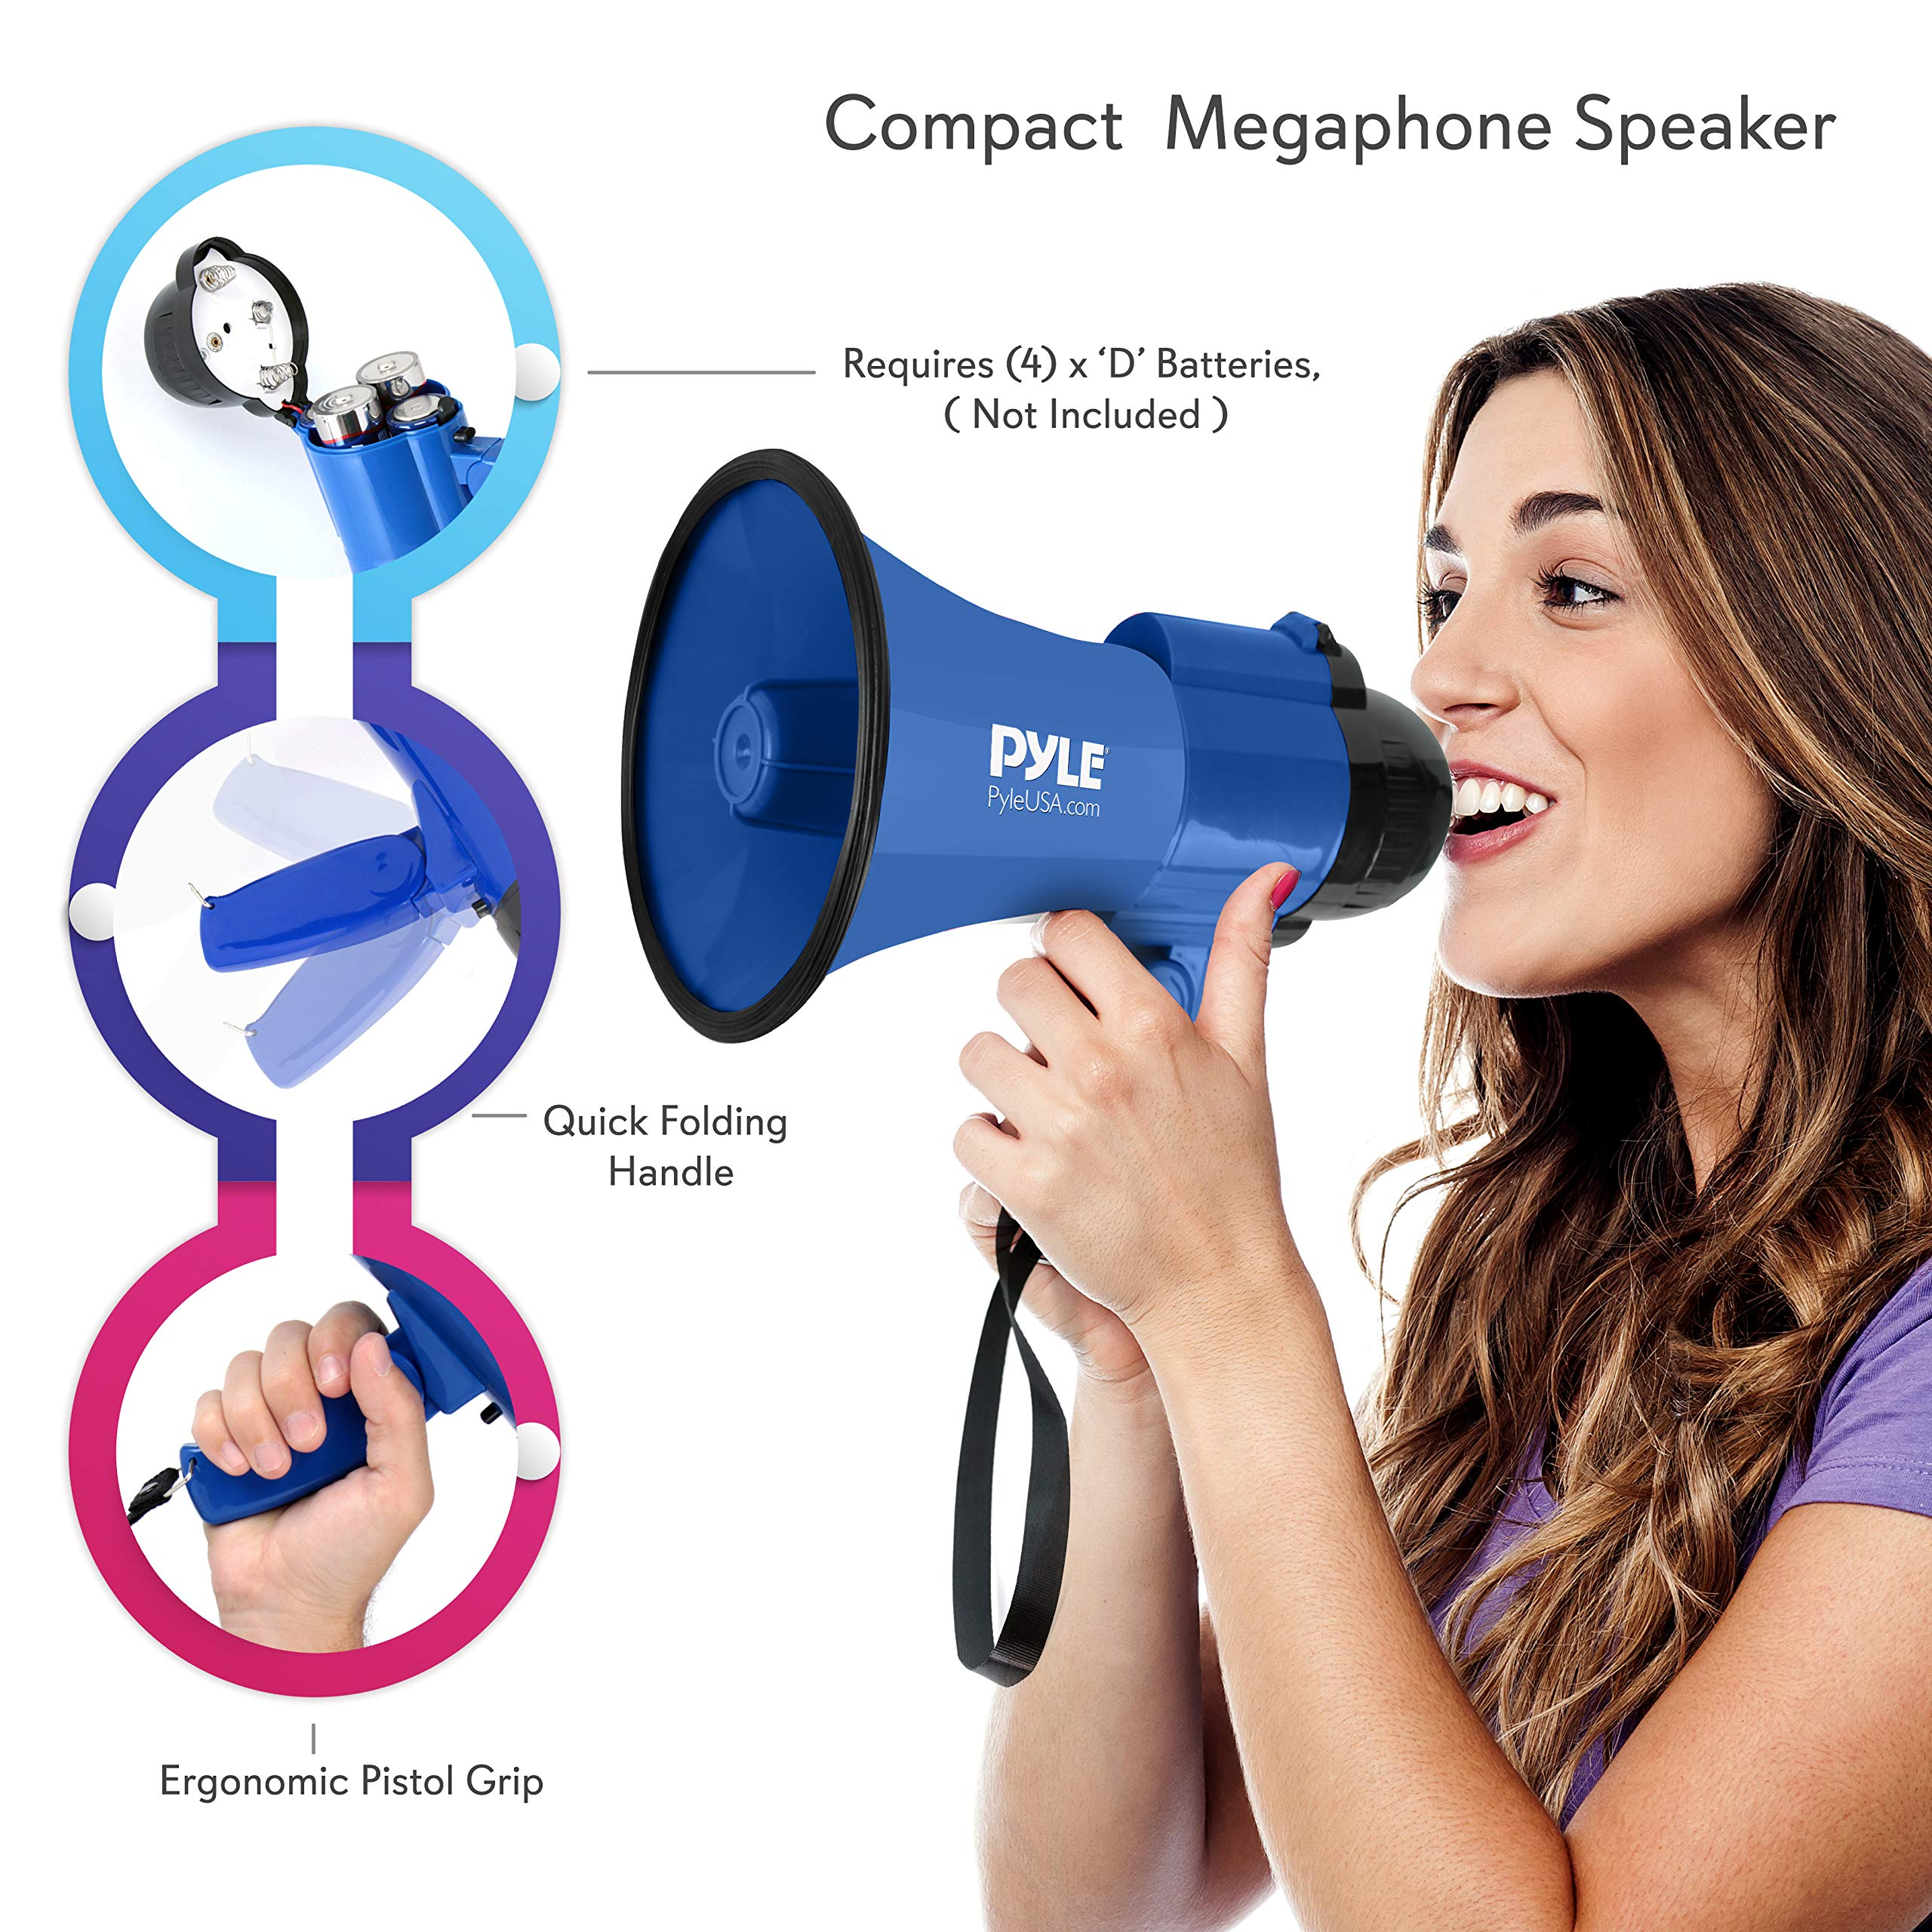 Portable Megaphone Speaker Siren Bullhorn - Compact and Battery Operated with 30 Watt Power, Microphone, 2 Modes, PA Sound and Foldable Handle for Cheerleading and Police Use - Pyle PMP31BL (Blue) by Pyle (Image #3)